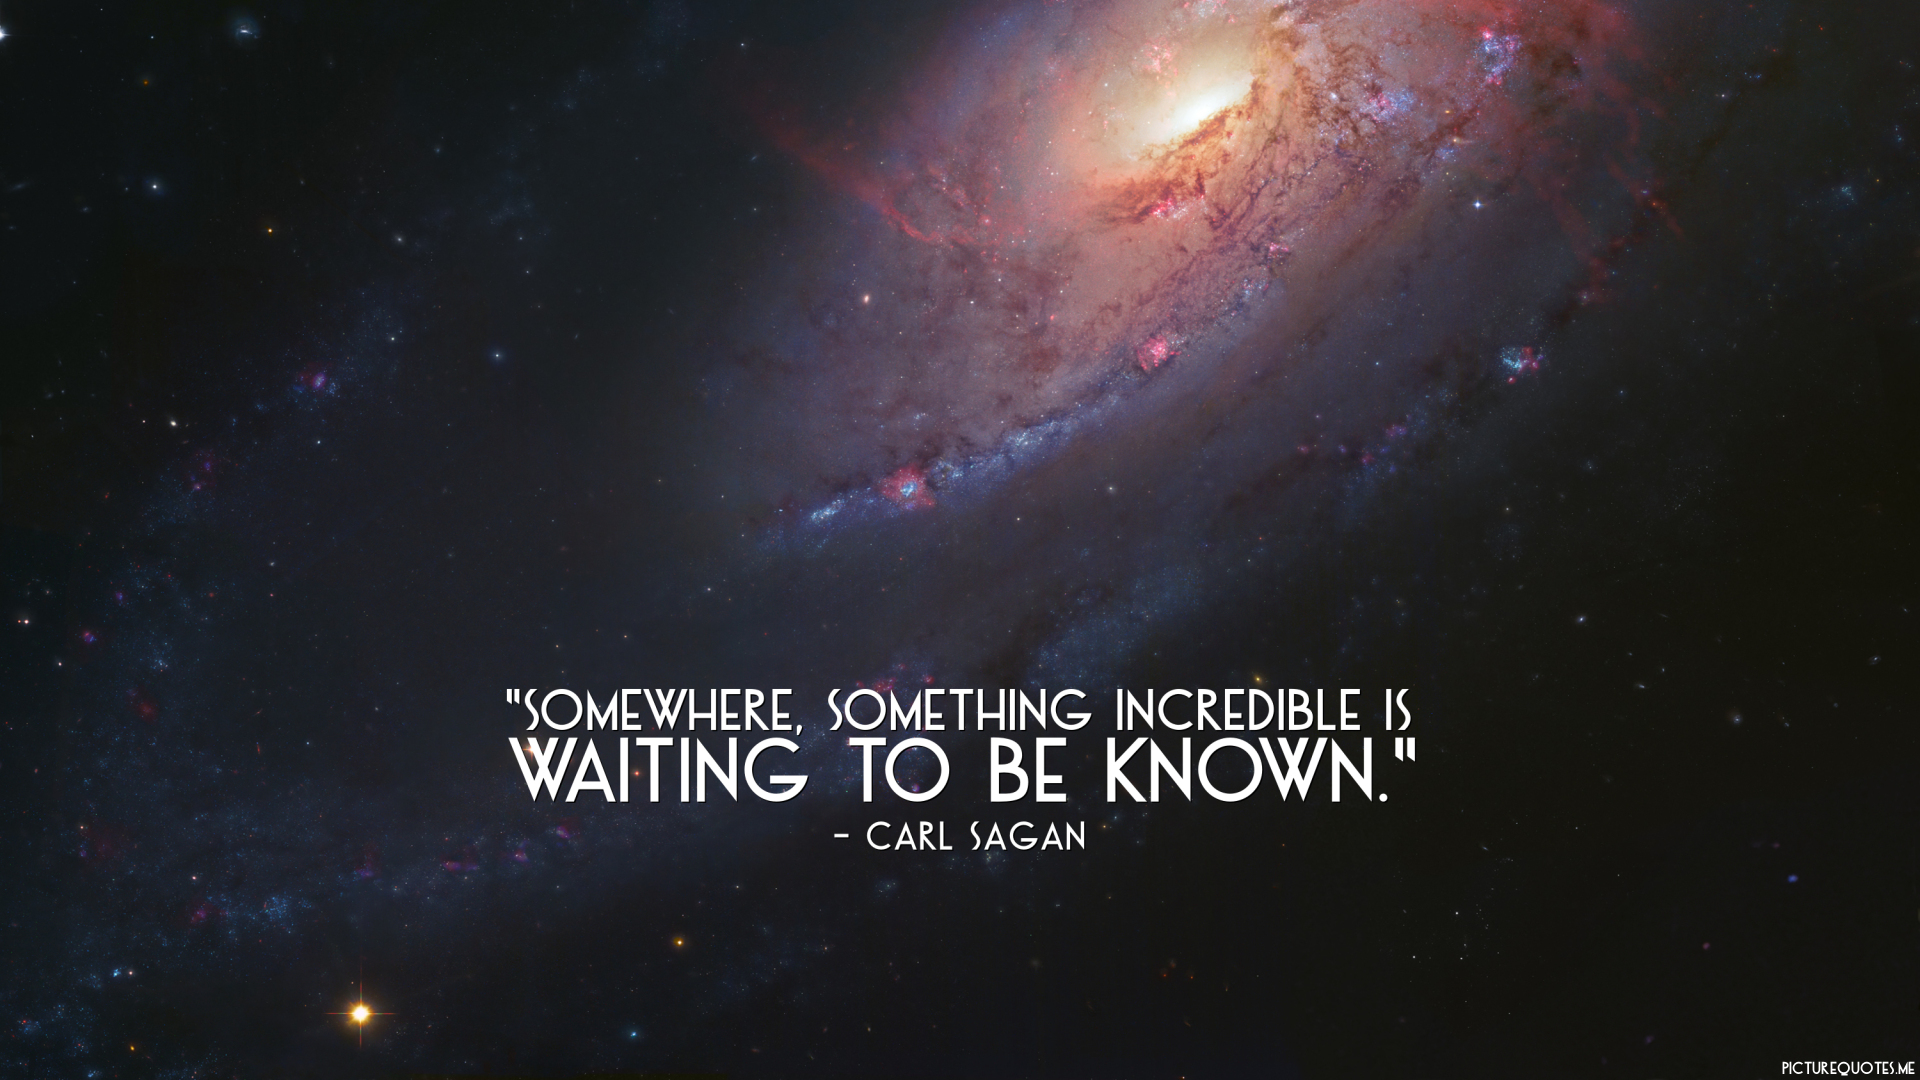 Somewhere, something incredible is waiting to be known ...